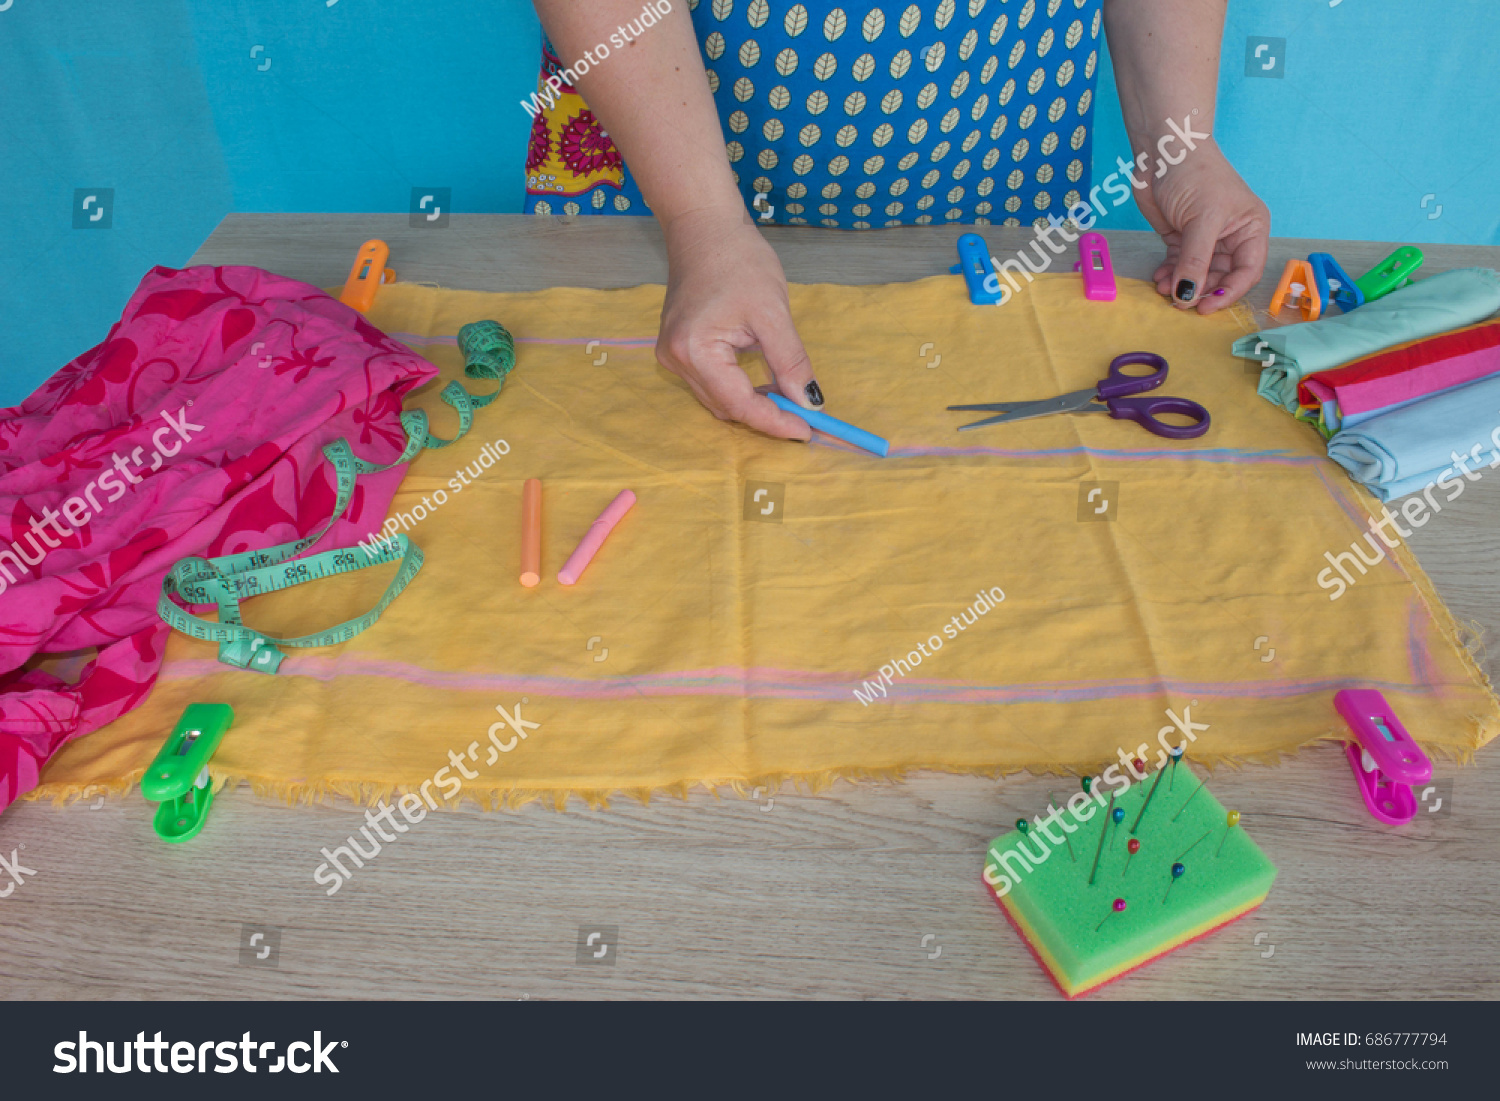 closeup of woman hands sewing yellow cloth outdoors. Woman's Hand Sewing Quilt #686777794